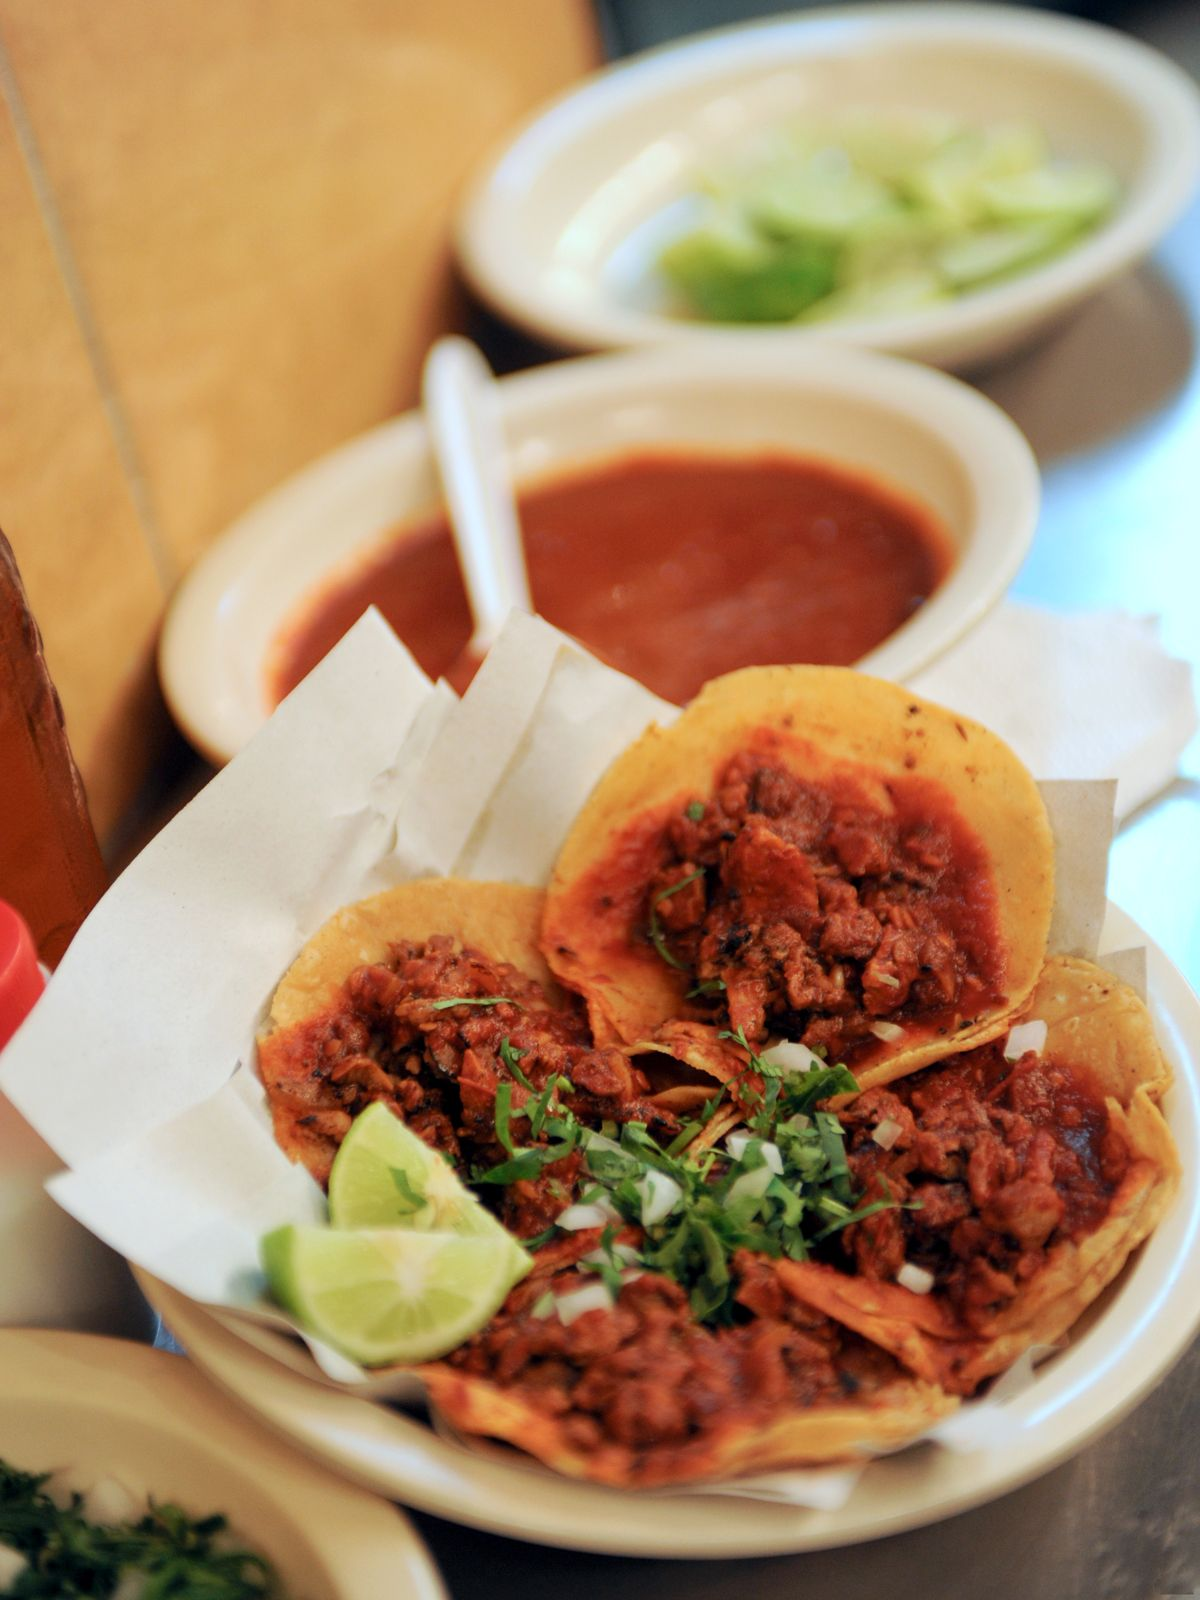 Tacos al pastor recipes cooking channel recipes pinterest tacos al pastor recipes cooking channel forumfinder Image collections